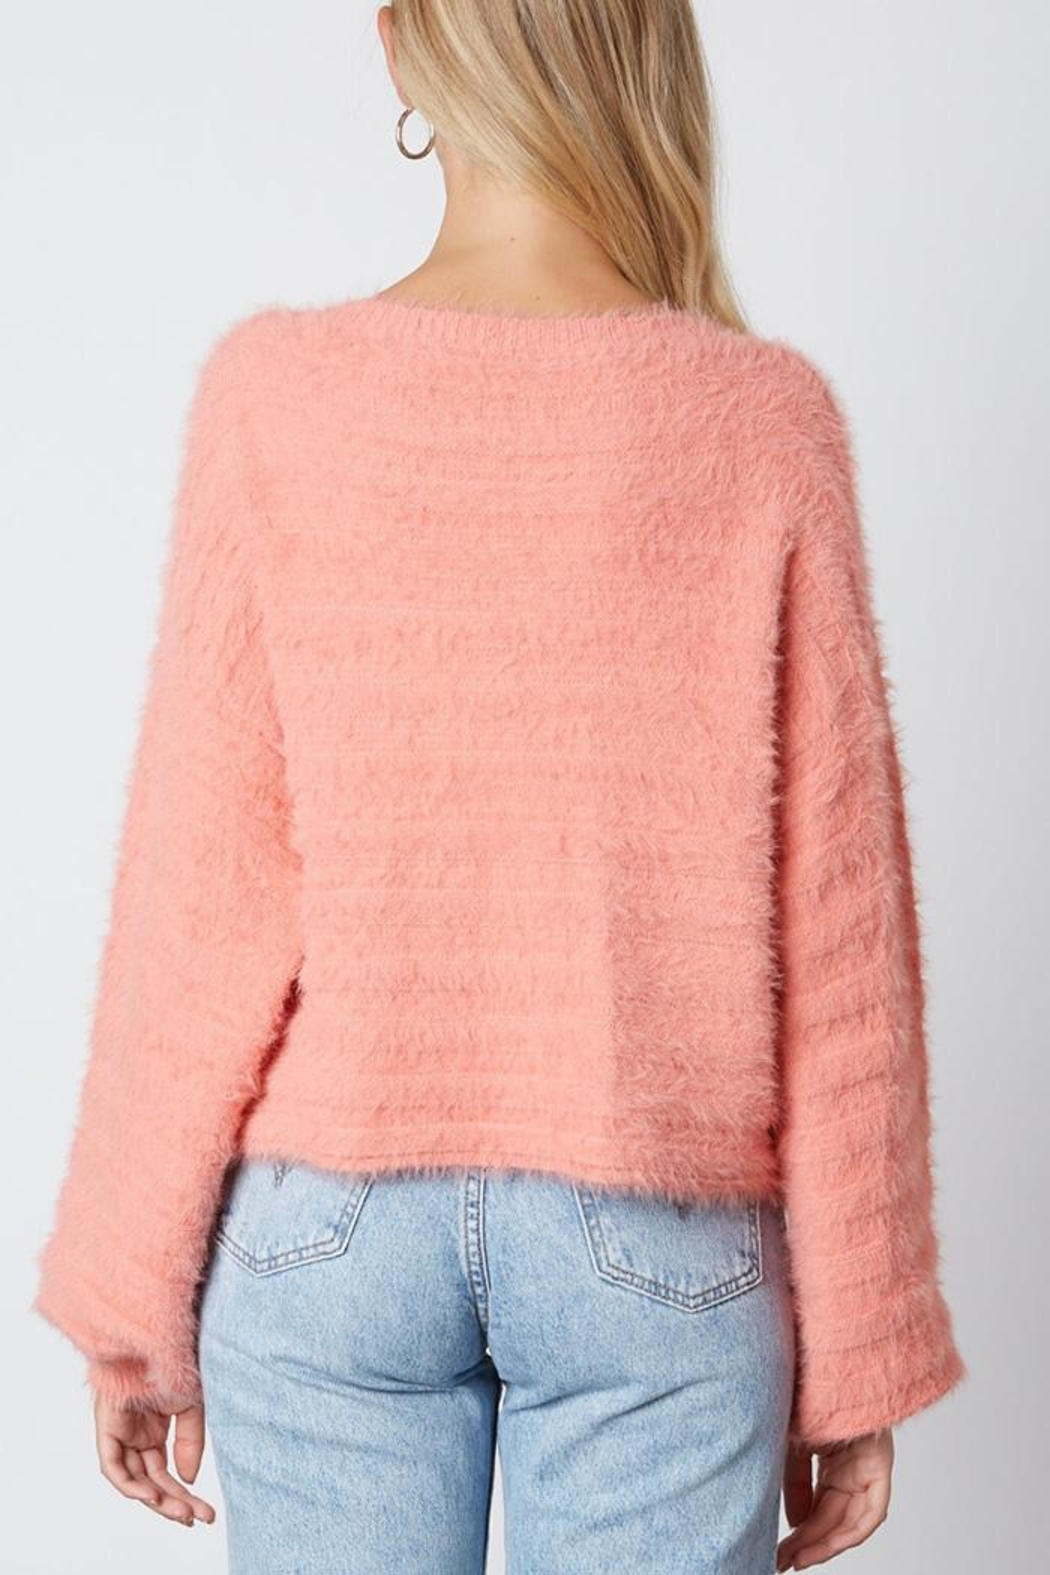 Cotton Candy LA Fuzzy v-Neck Sweaater - Back Cropped Image